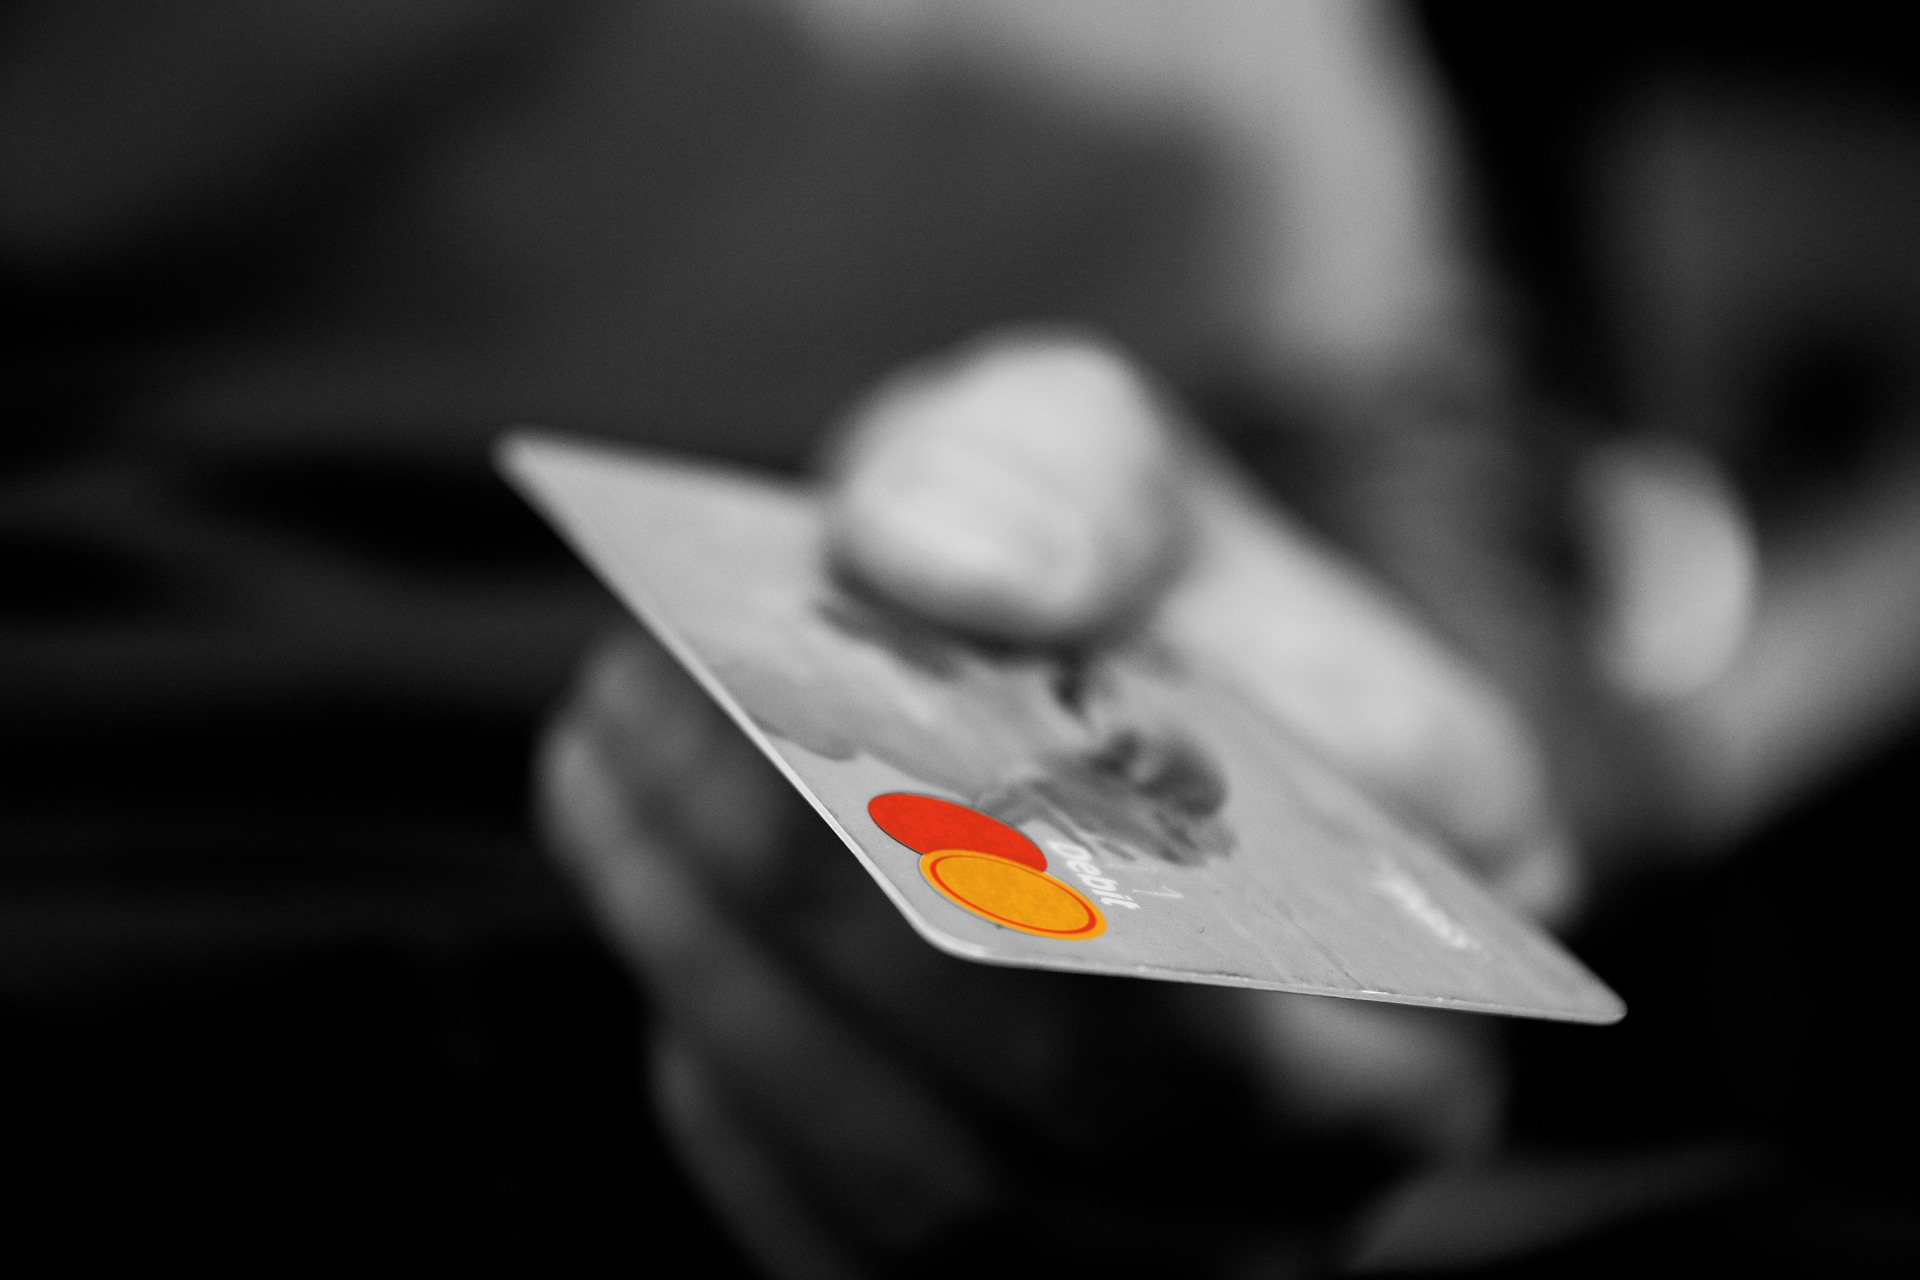 Installment Loans: Credit Card Acquistion Tool, Retention Product or FinTech Line of Defense